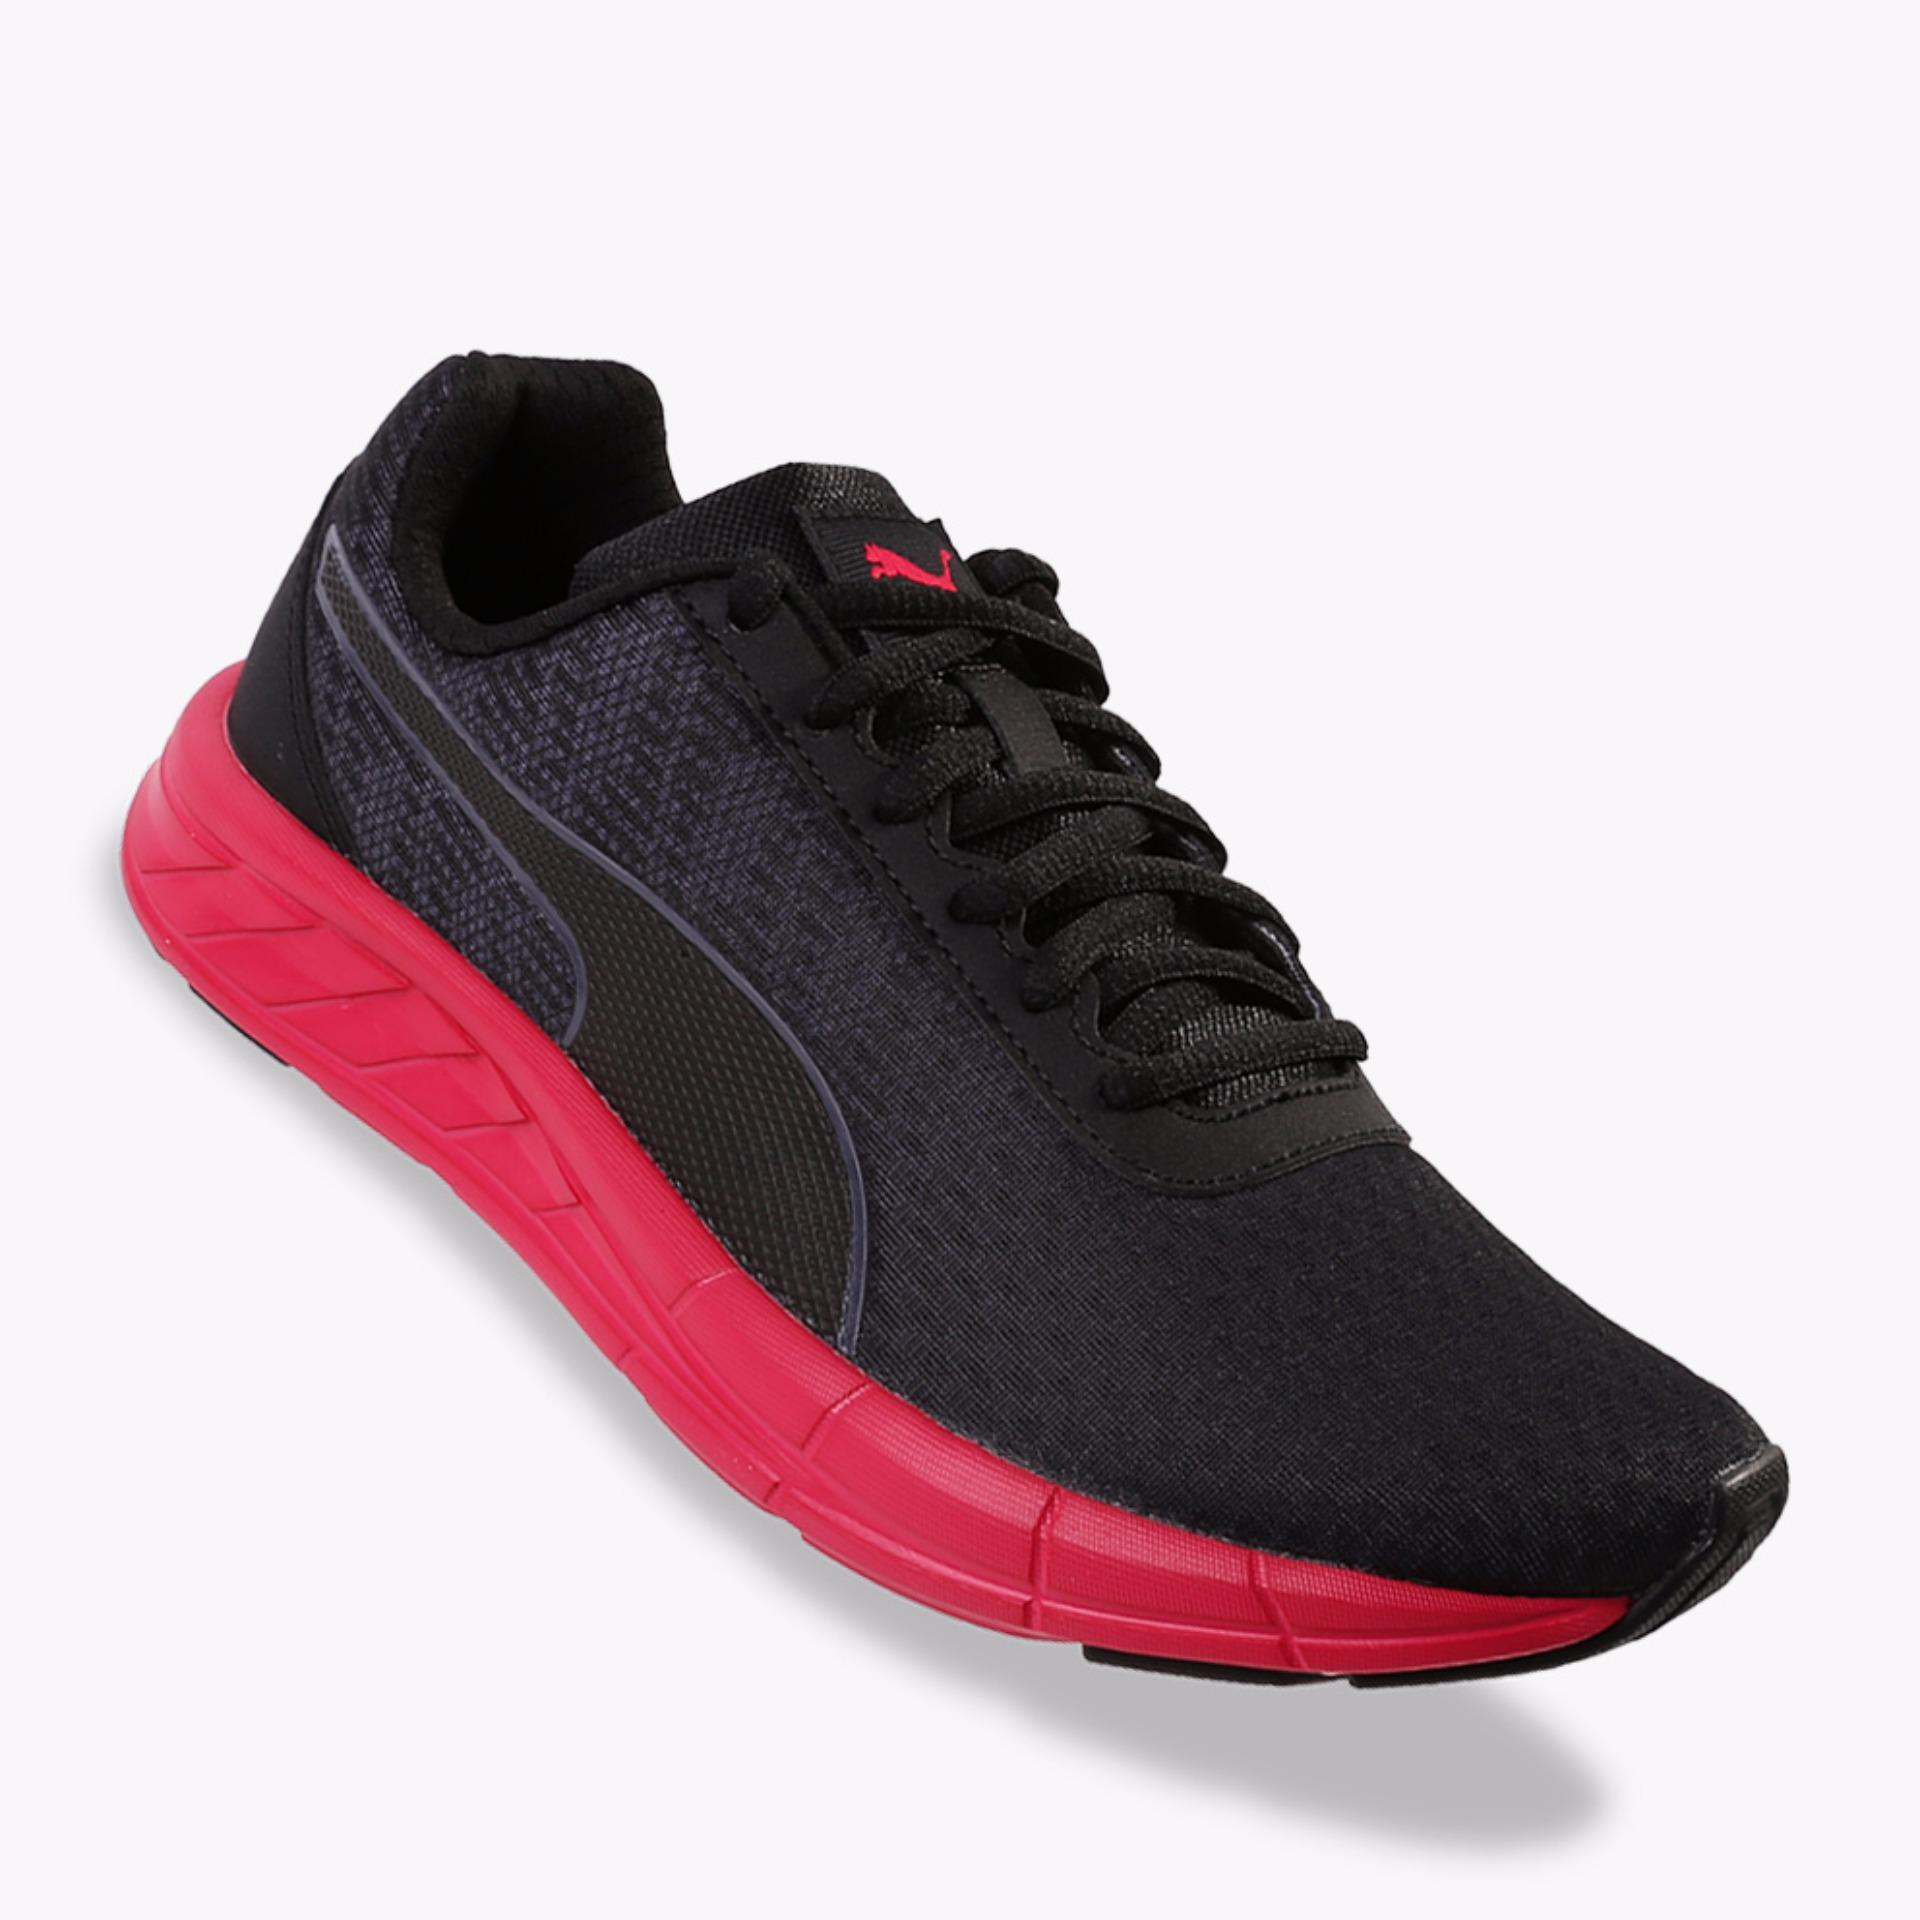 Harga Puma Comet Women S Running Shoes Hitam Merah Original